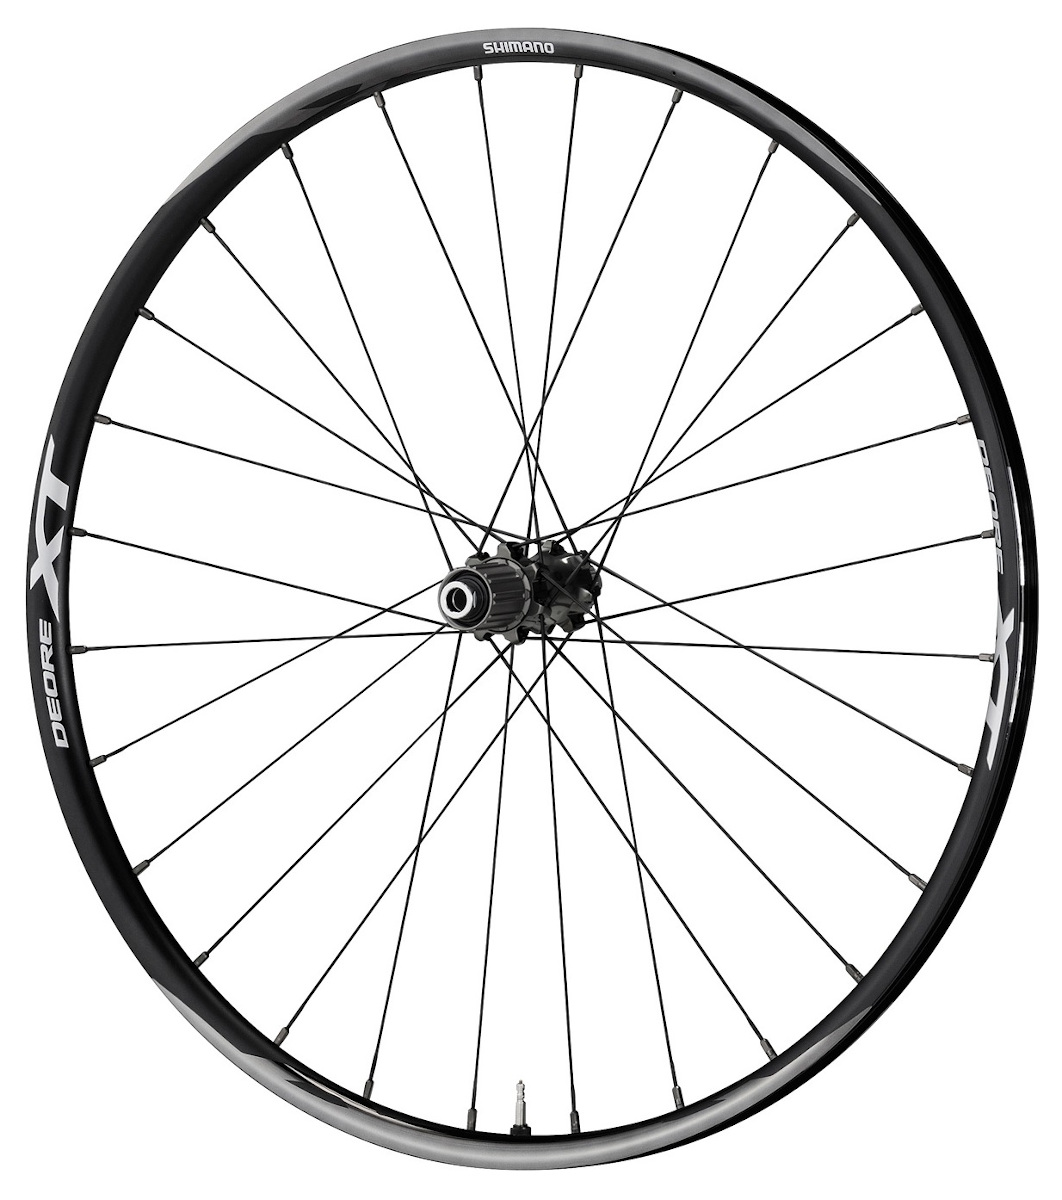 Shimano Deore Xt Xc M8000 27.5in 12x148mm Boost Rear Wheel Black